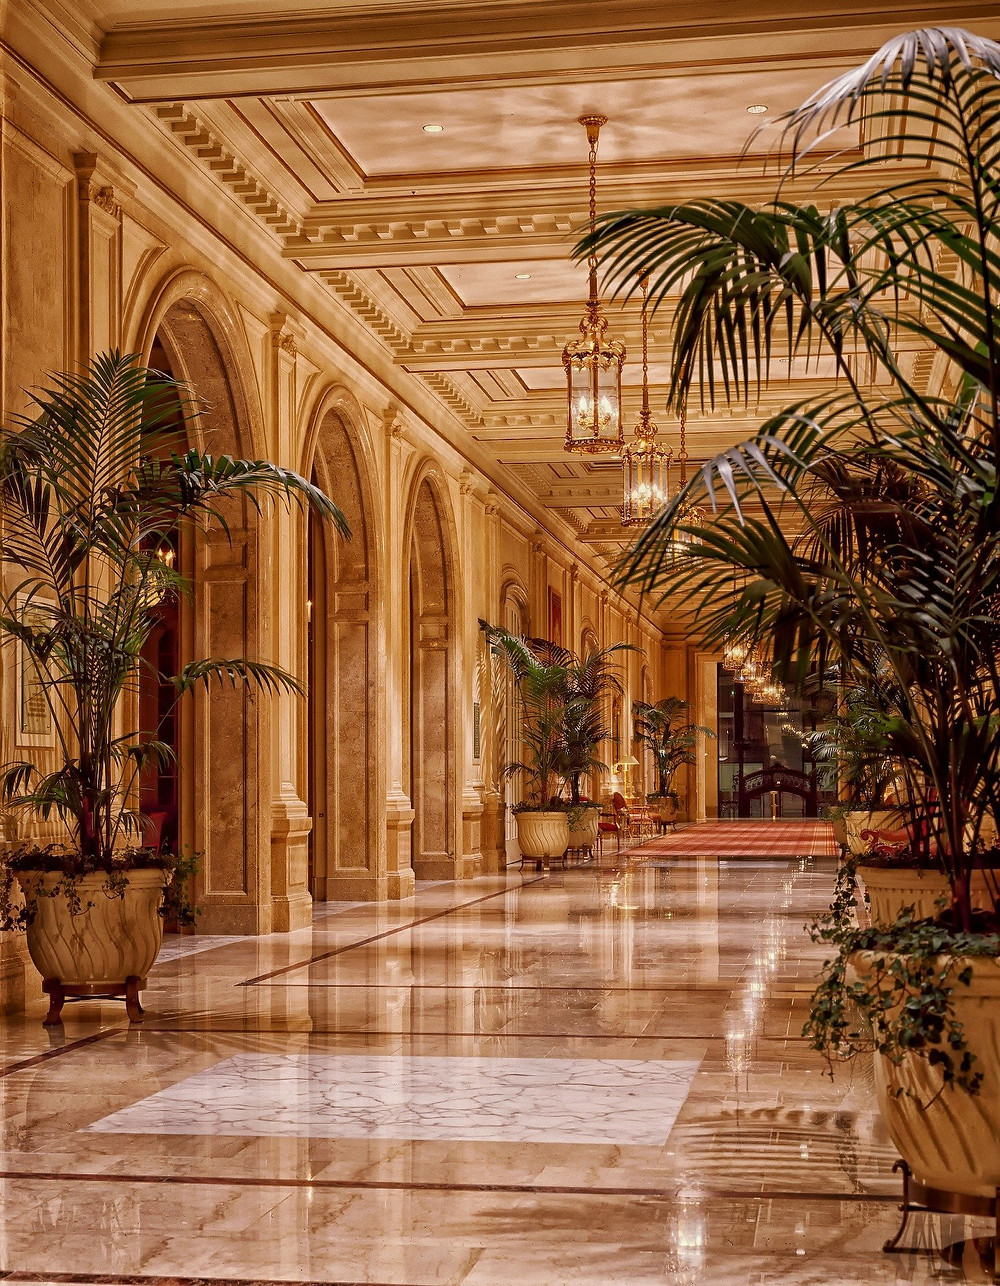 Definition of a palace hotel